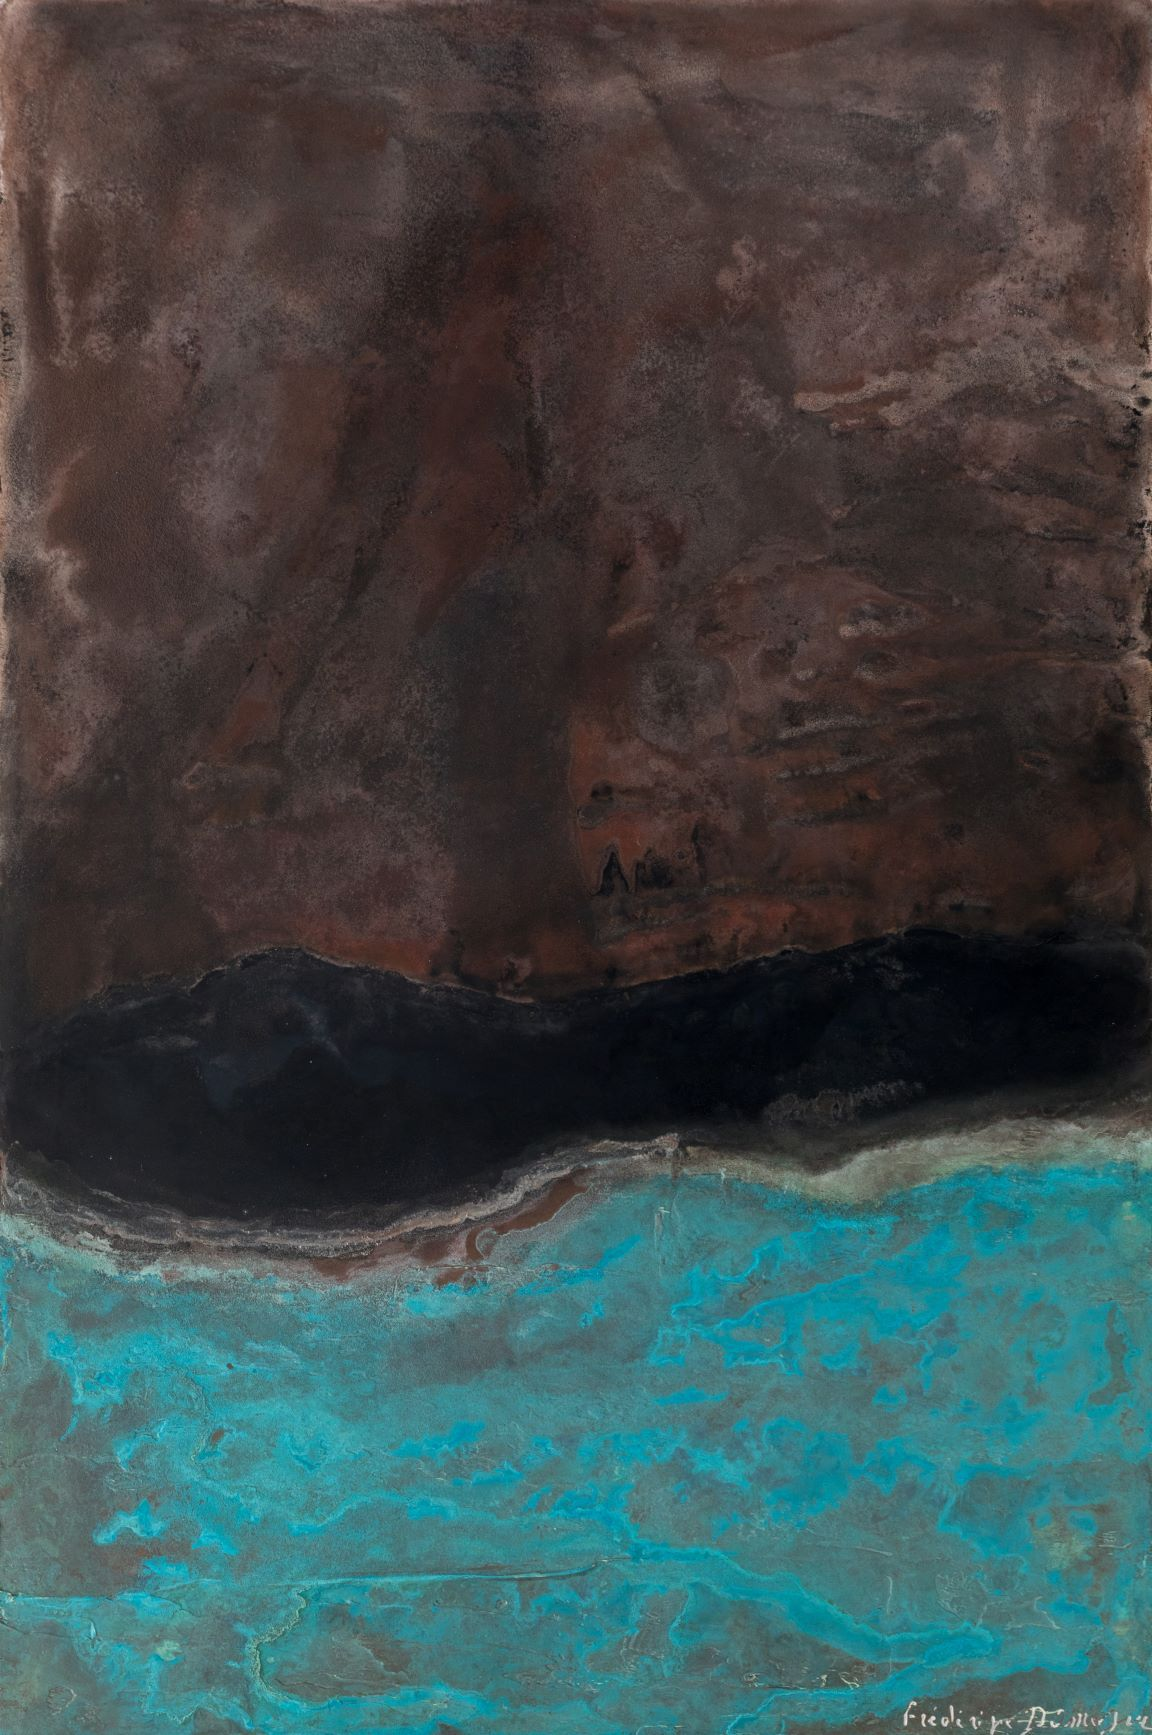 Sans titre XIX-X, Small size series,Frédérique Domergue,Contemporary painting